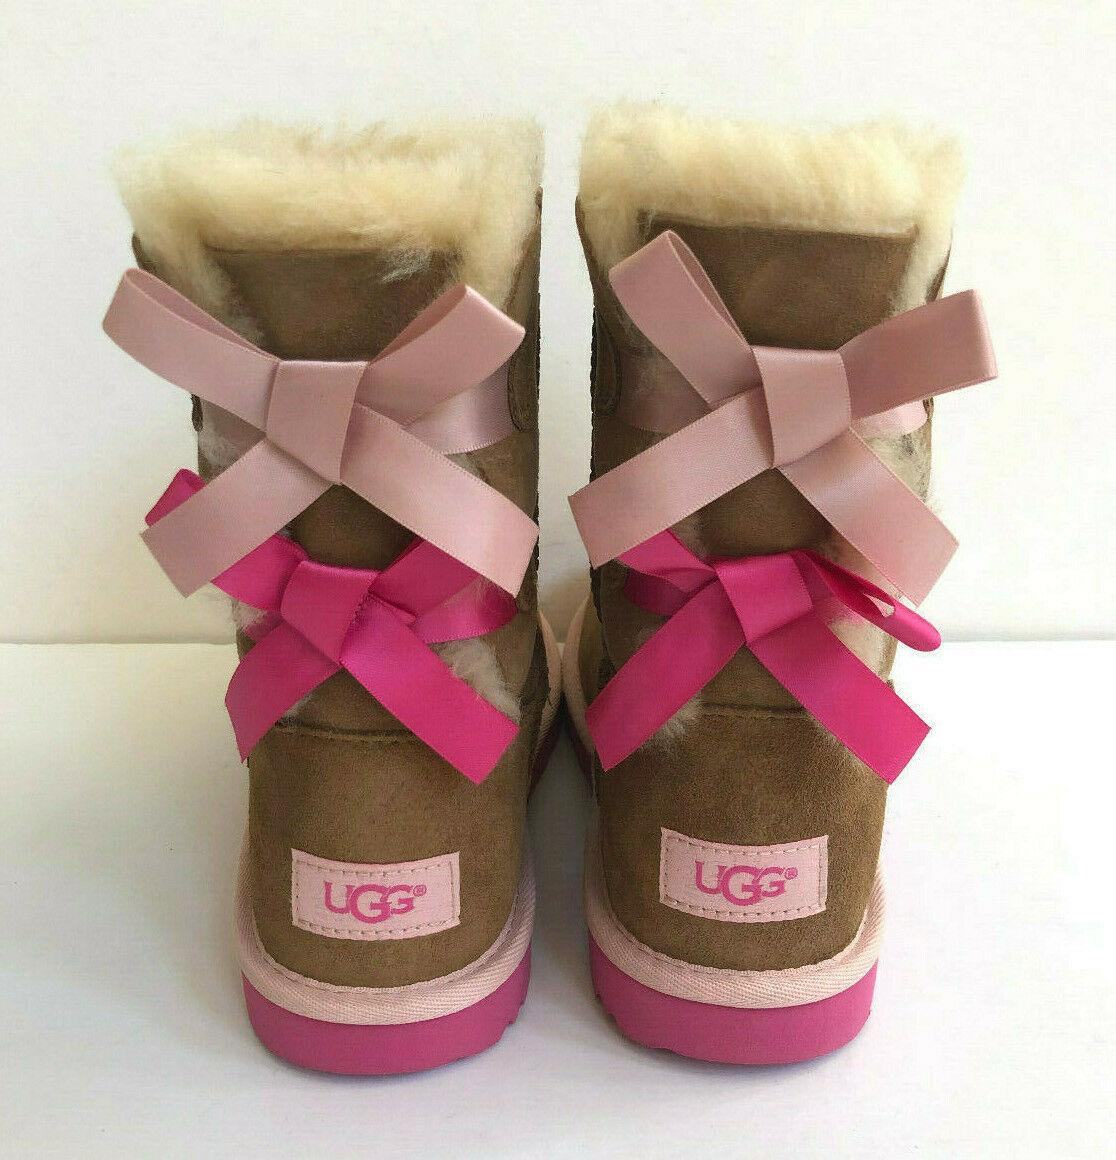 Primary image for UGG BAILEY BOW II CHESTNUT PINK KID/YOUTH US 4 -will fit Women US 6 /EU 37 /UK 4